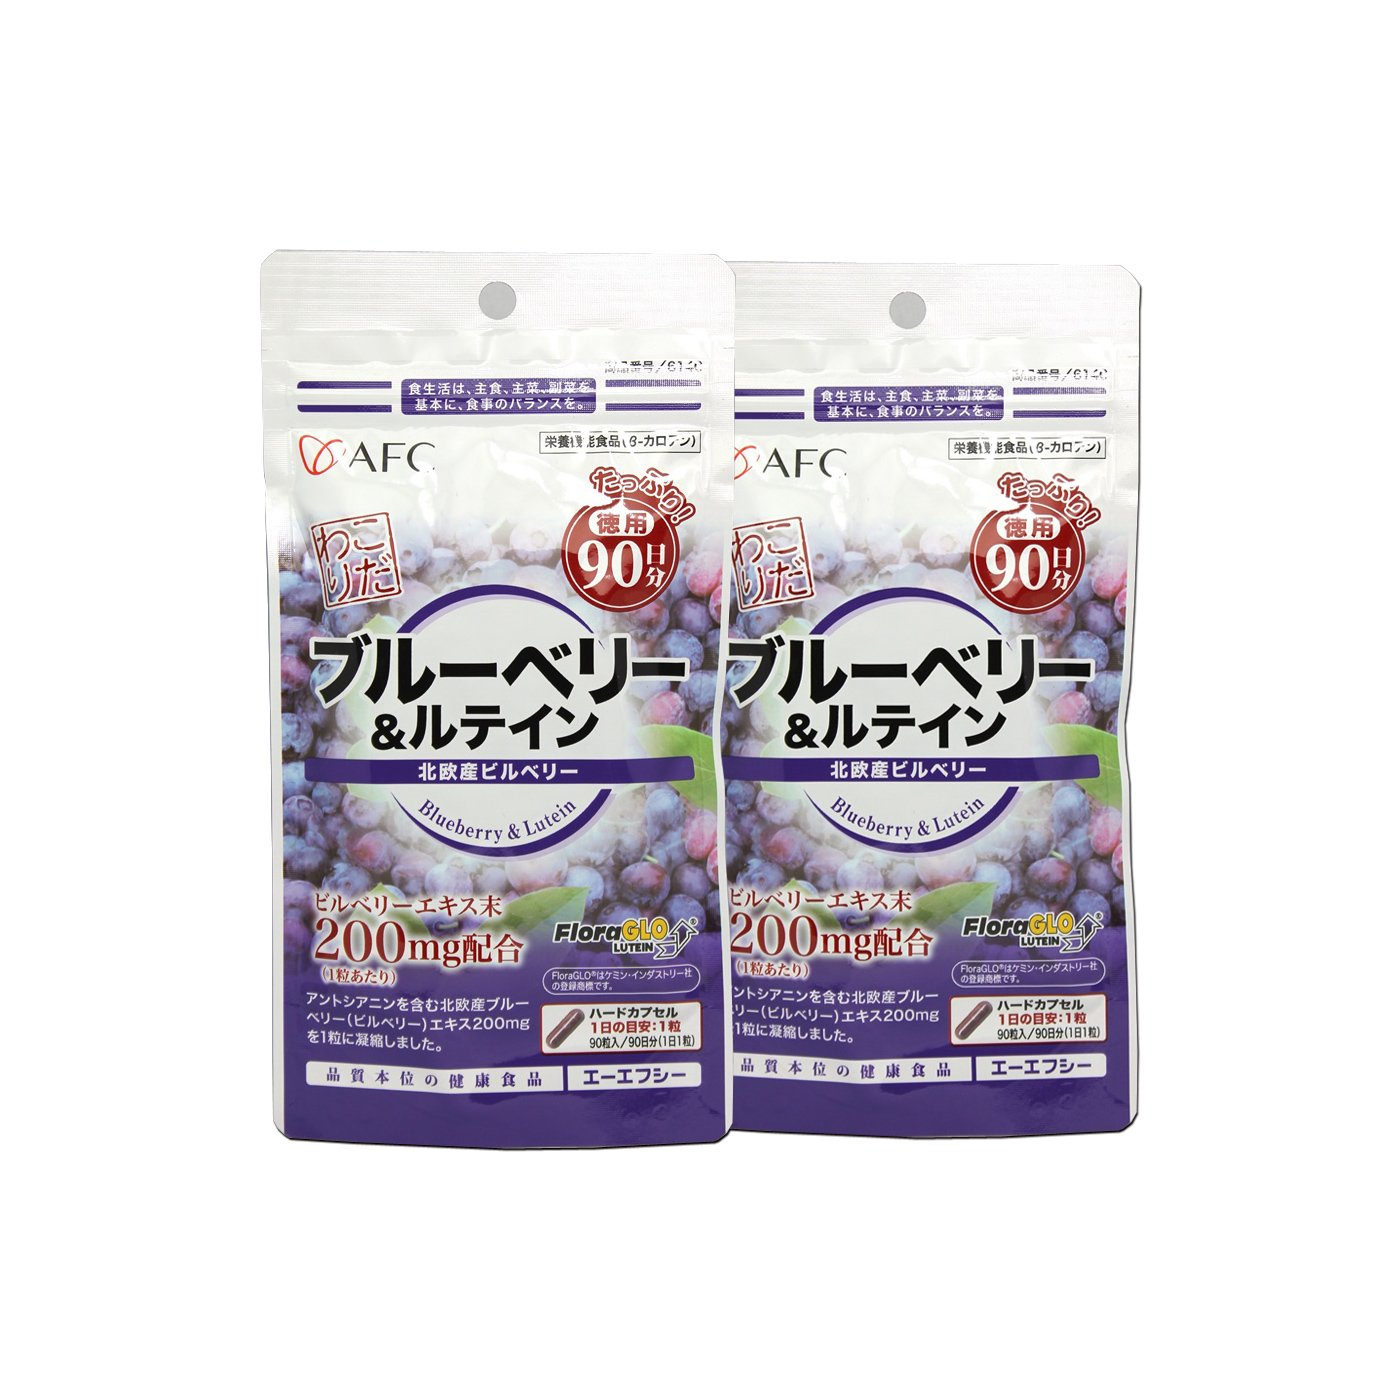 AFC Blueberry + lutein for 6 months (90 days series * 2 sets)